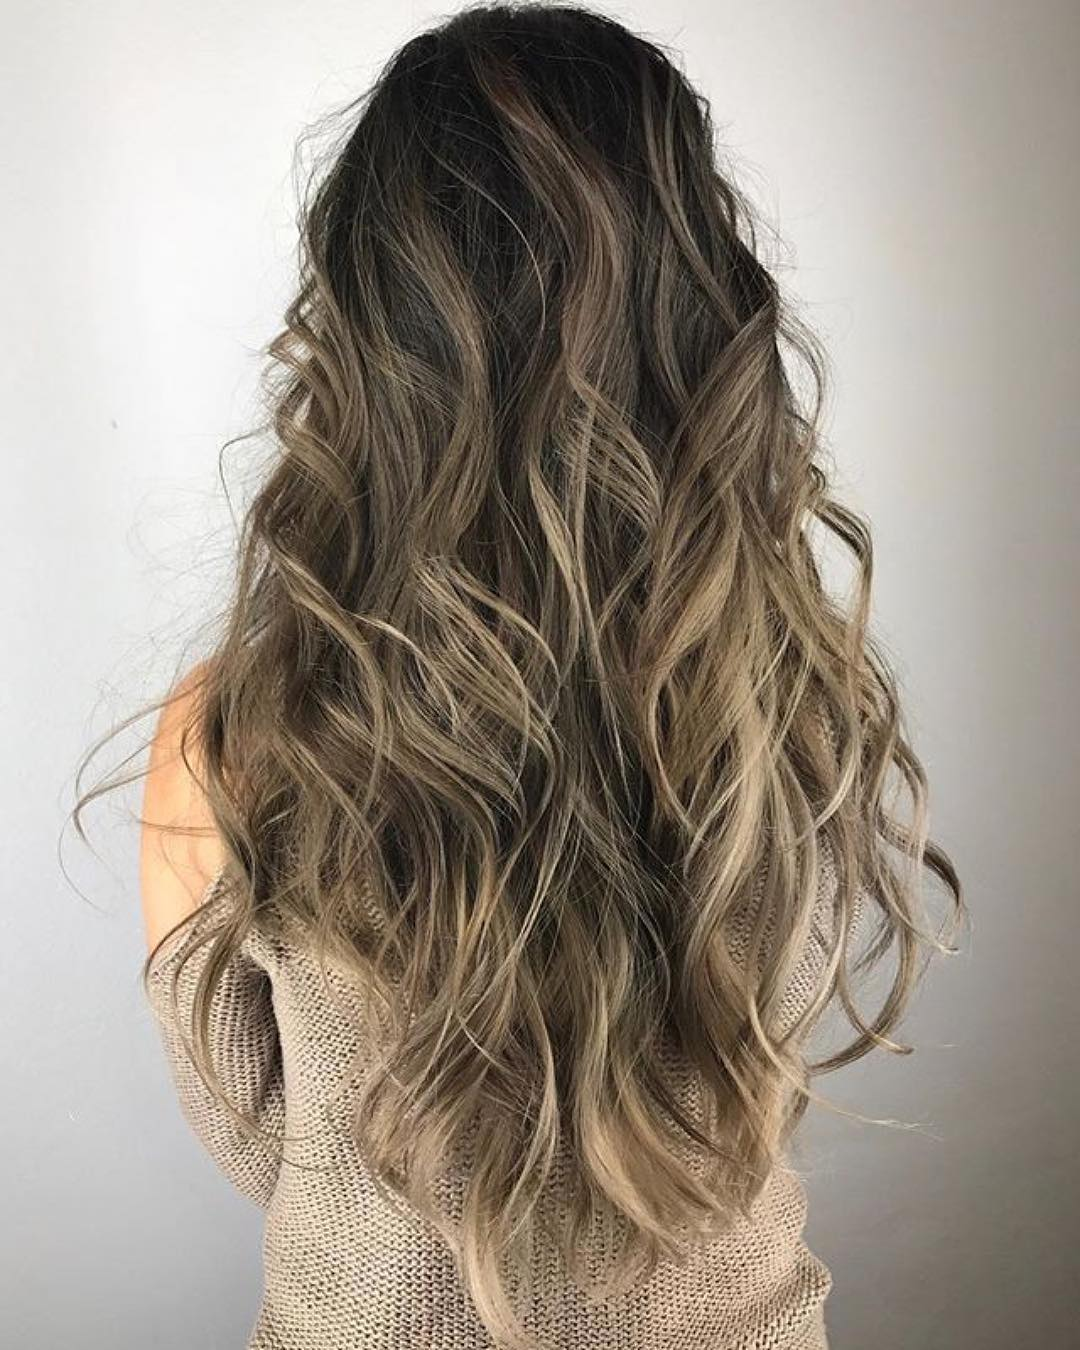 Waist-Length Curly Hairstyle